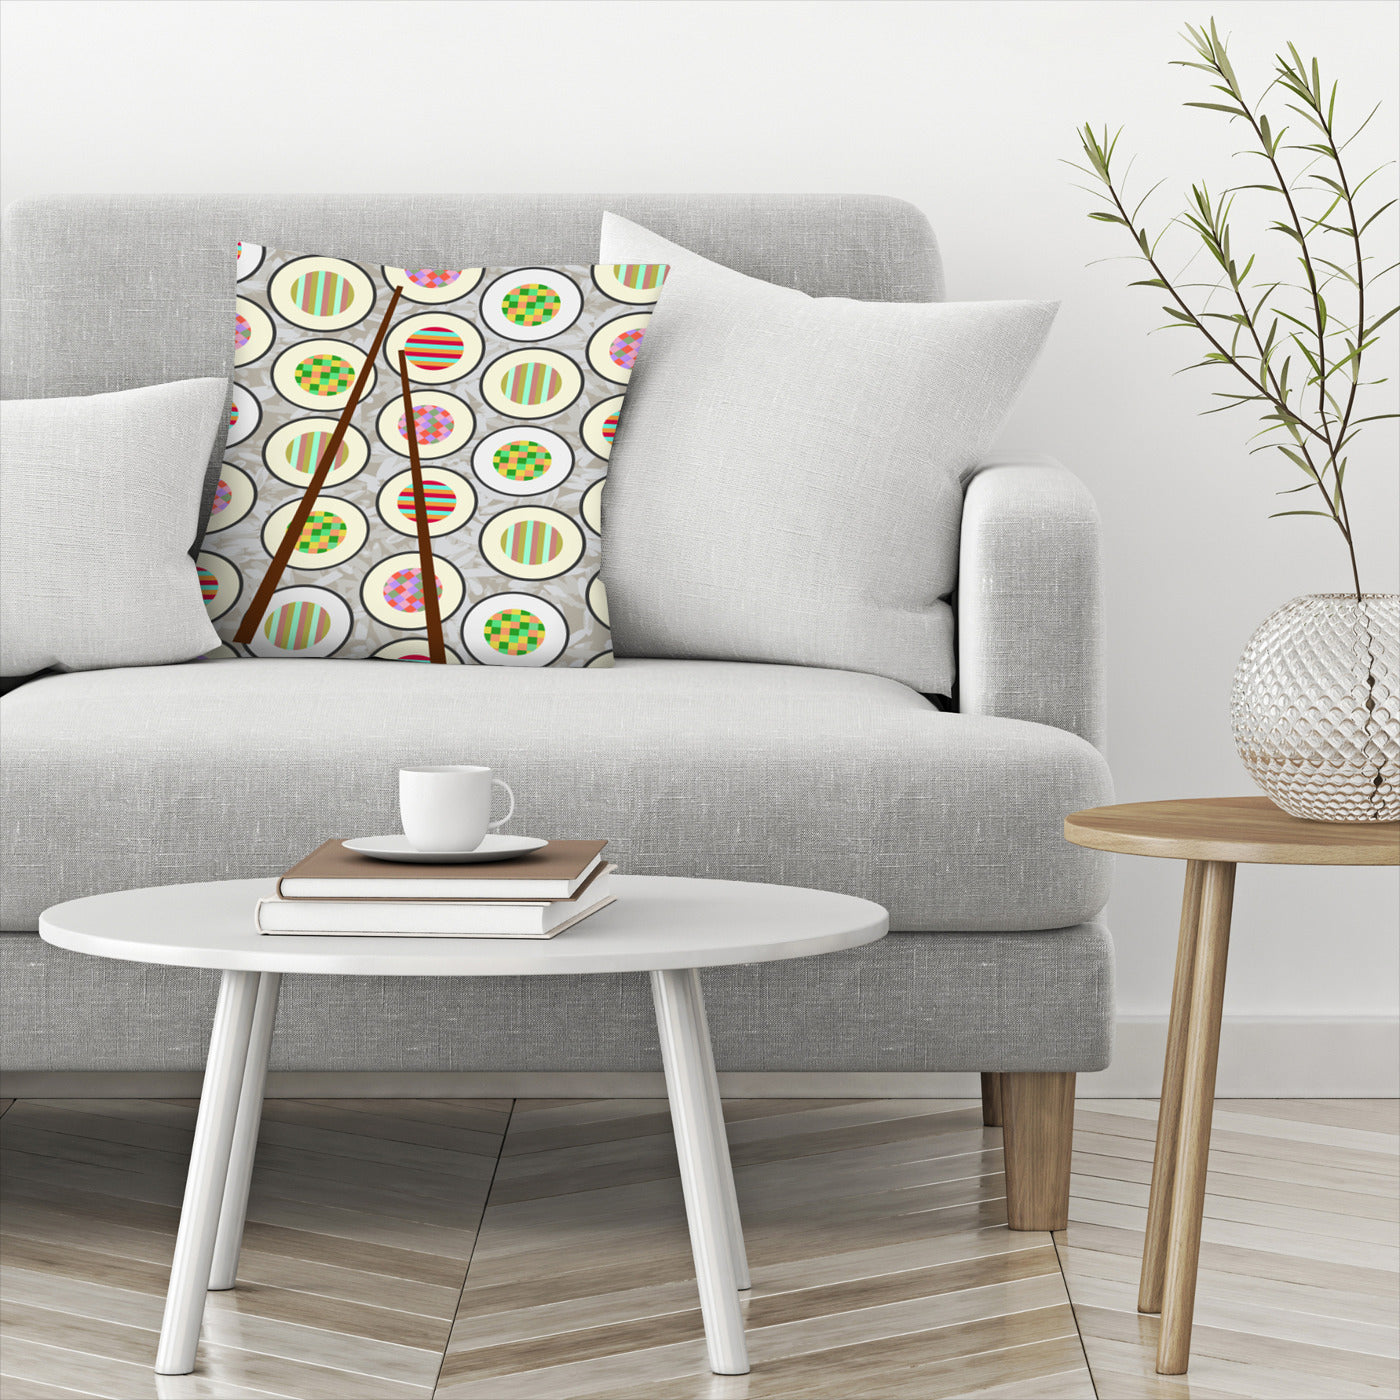 Sushi Time by Susana Paz Decorative Pillow - Decorative Pillow - Americanflat